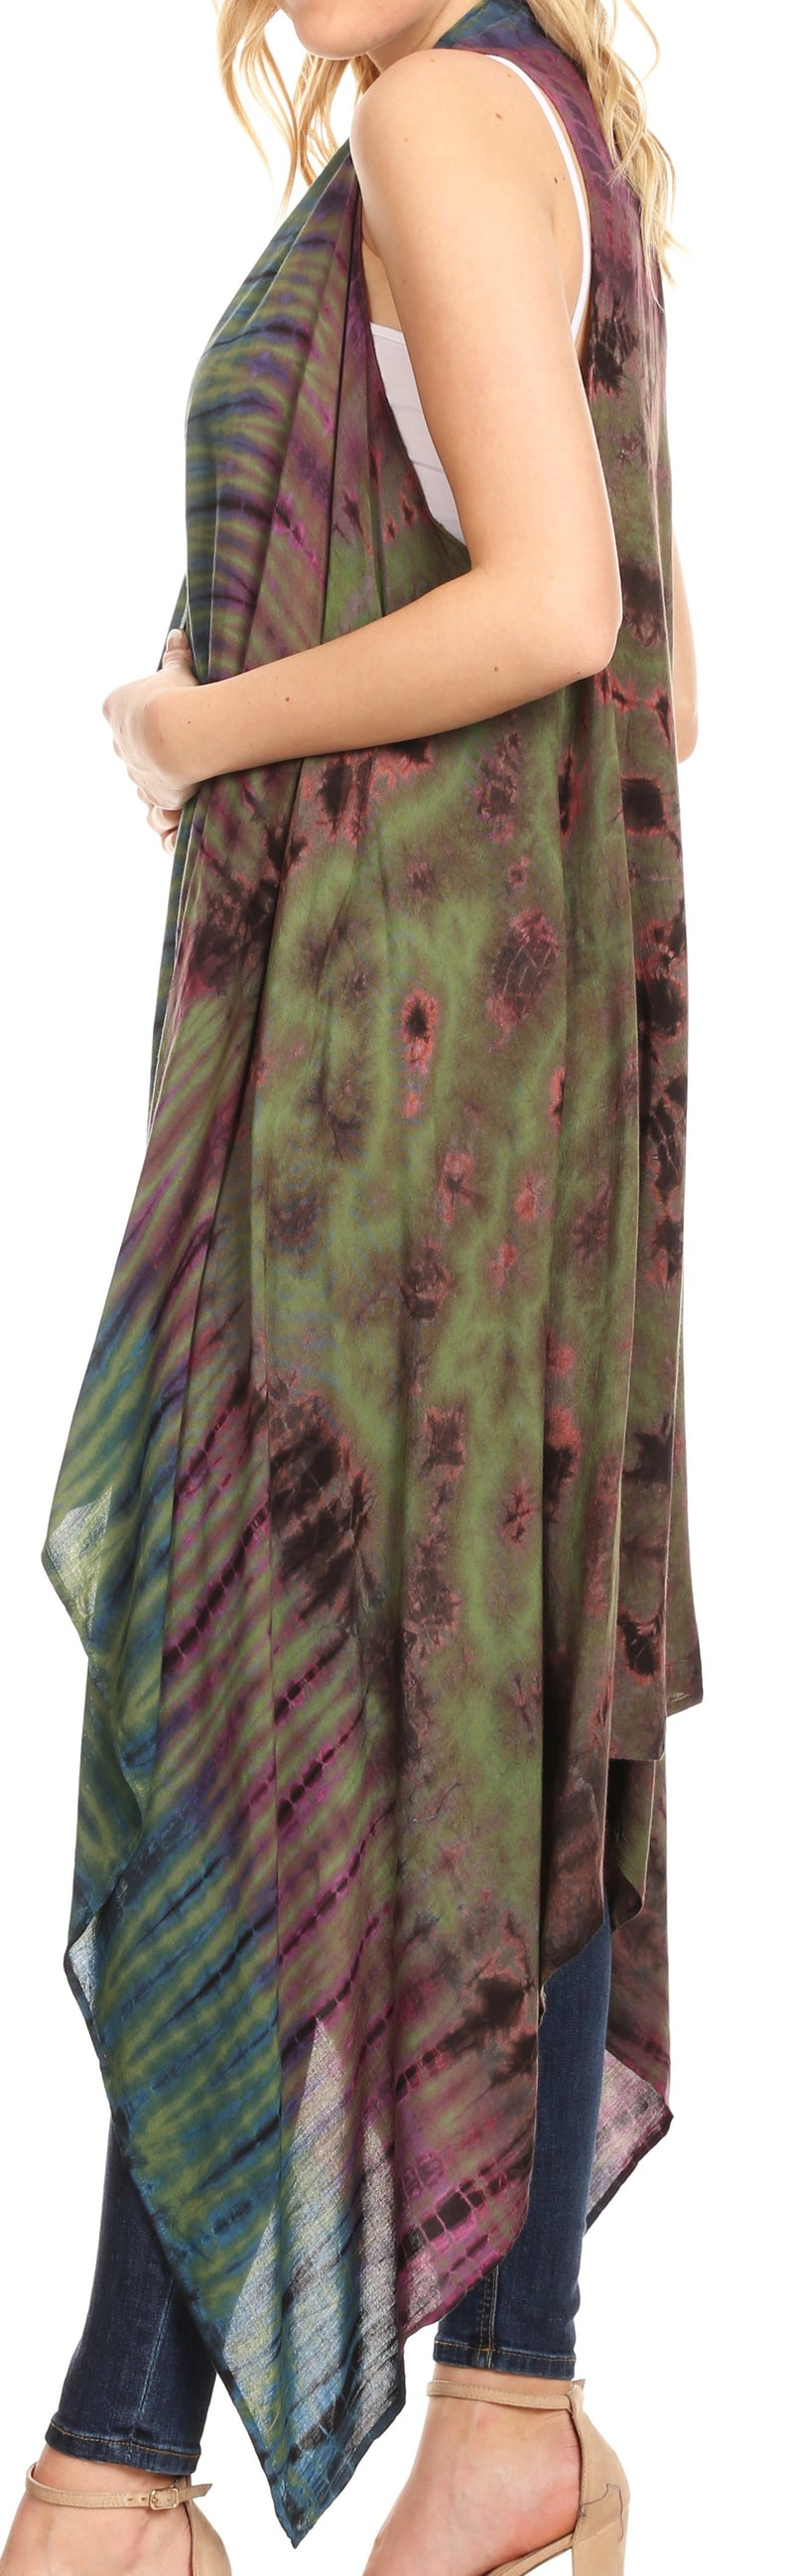 Sakkas Ivana Women's Oversized Draped Open Front Sleeveless Cardigan in Tie Dye